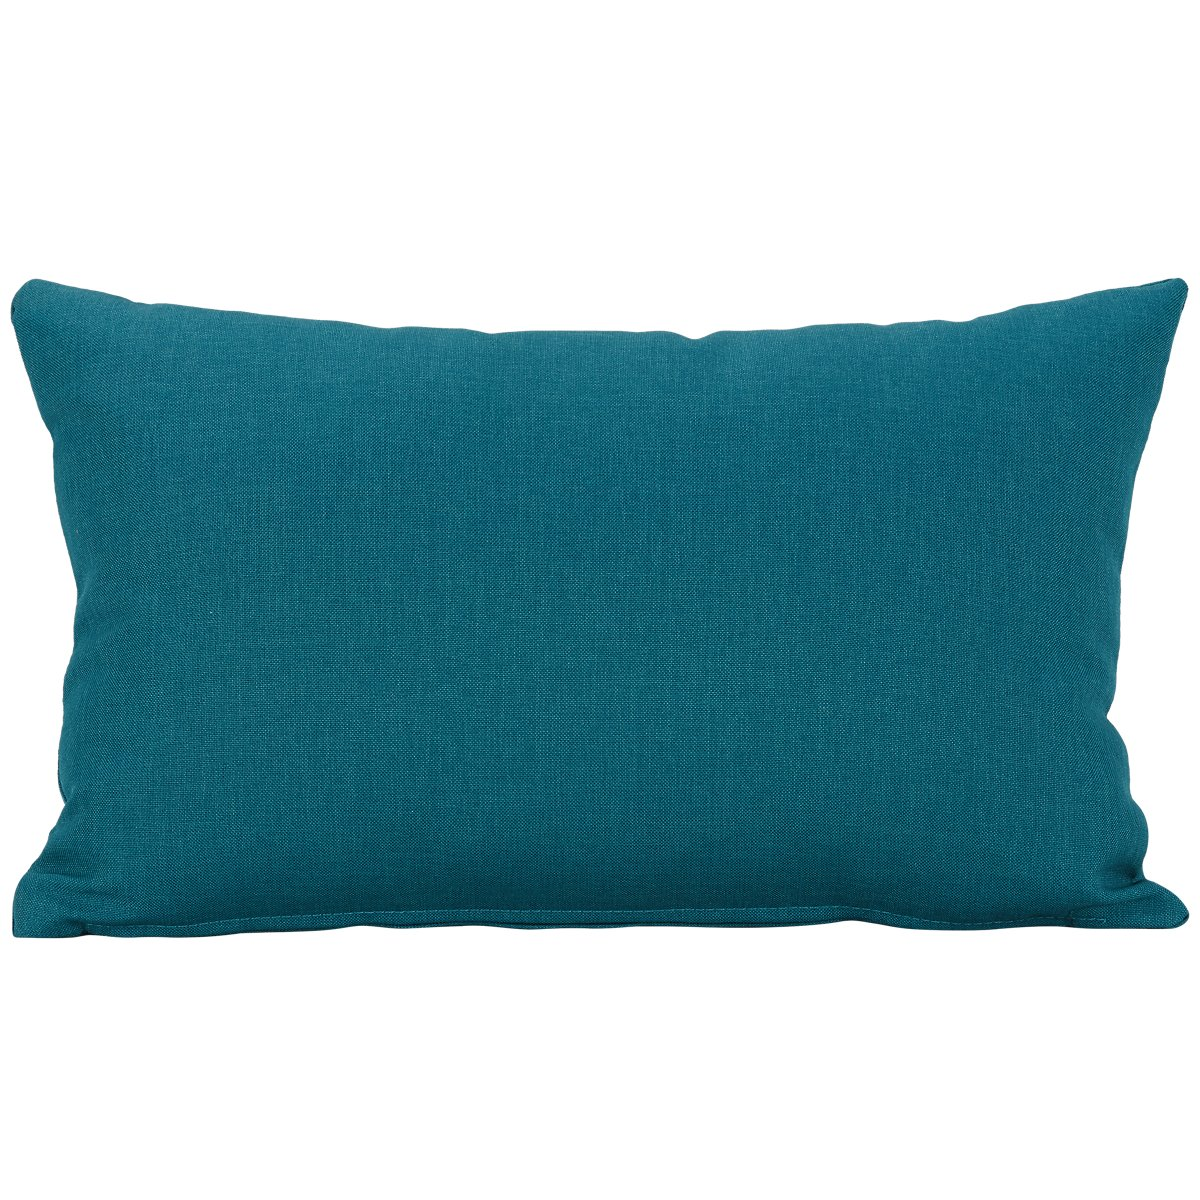 Callie Teal Rectangular Accent Pillow